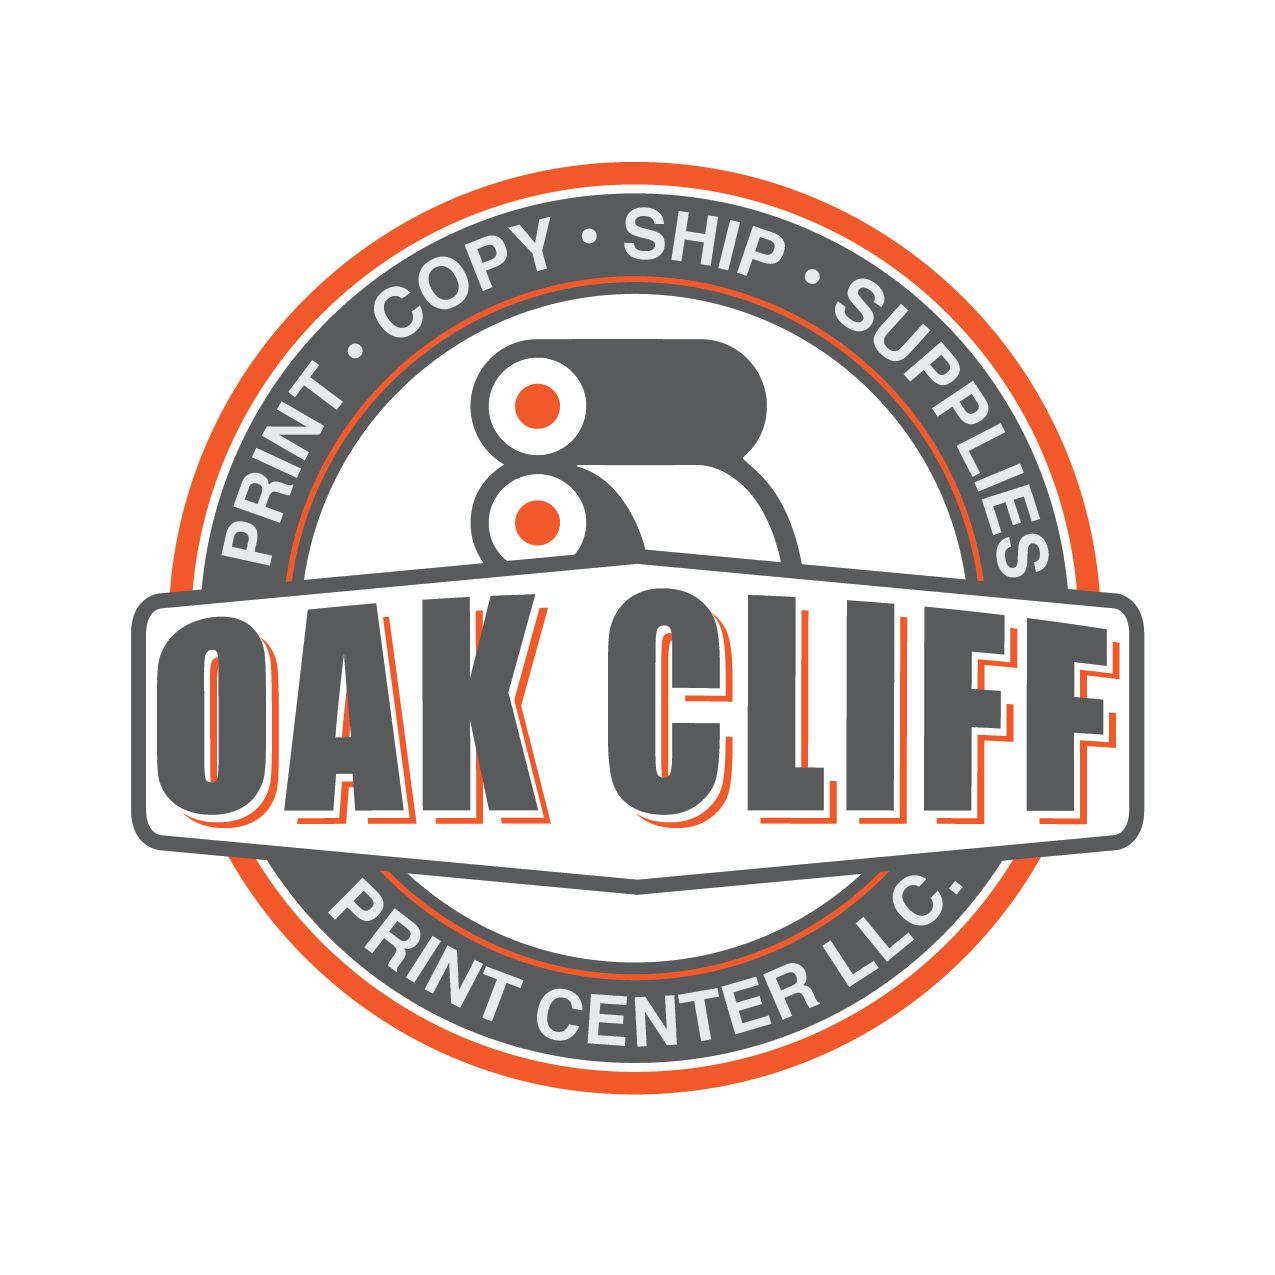 Oak Cliff Print Center